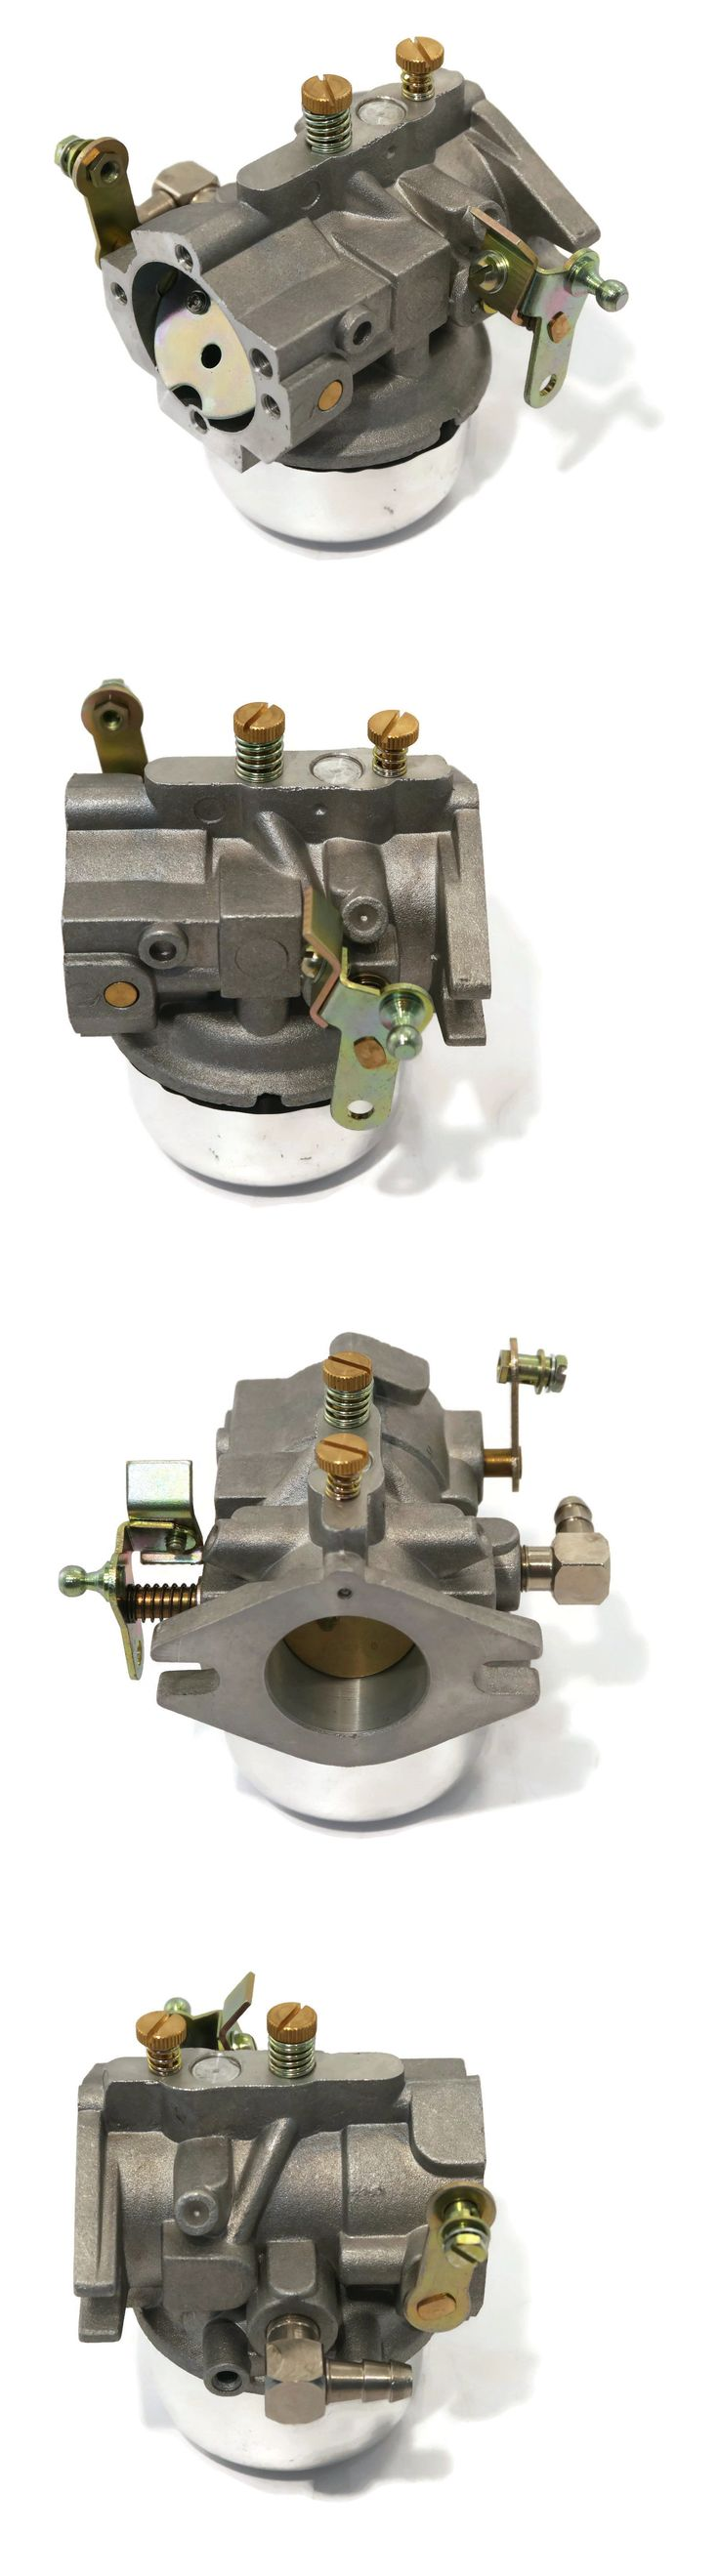 Other Outdoor Power Equipment 29520: Carburetor Carb Fits Kohler K Series K582 Cast Iron Twin Lawn Mower Engine Motor -> BUY IT NOW ONLY: $52.49 on eBay!